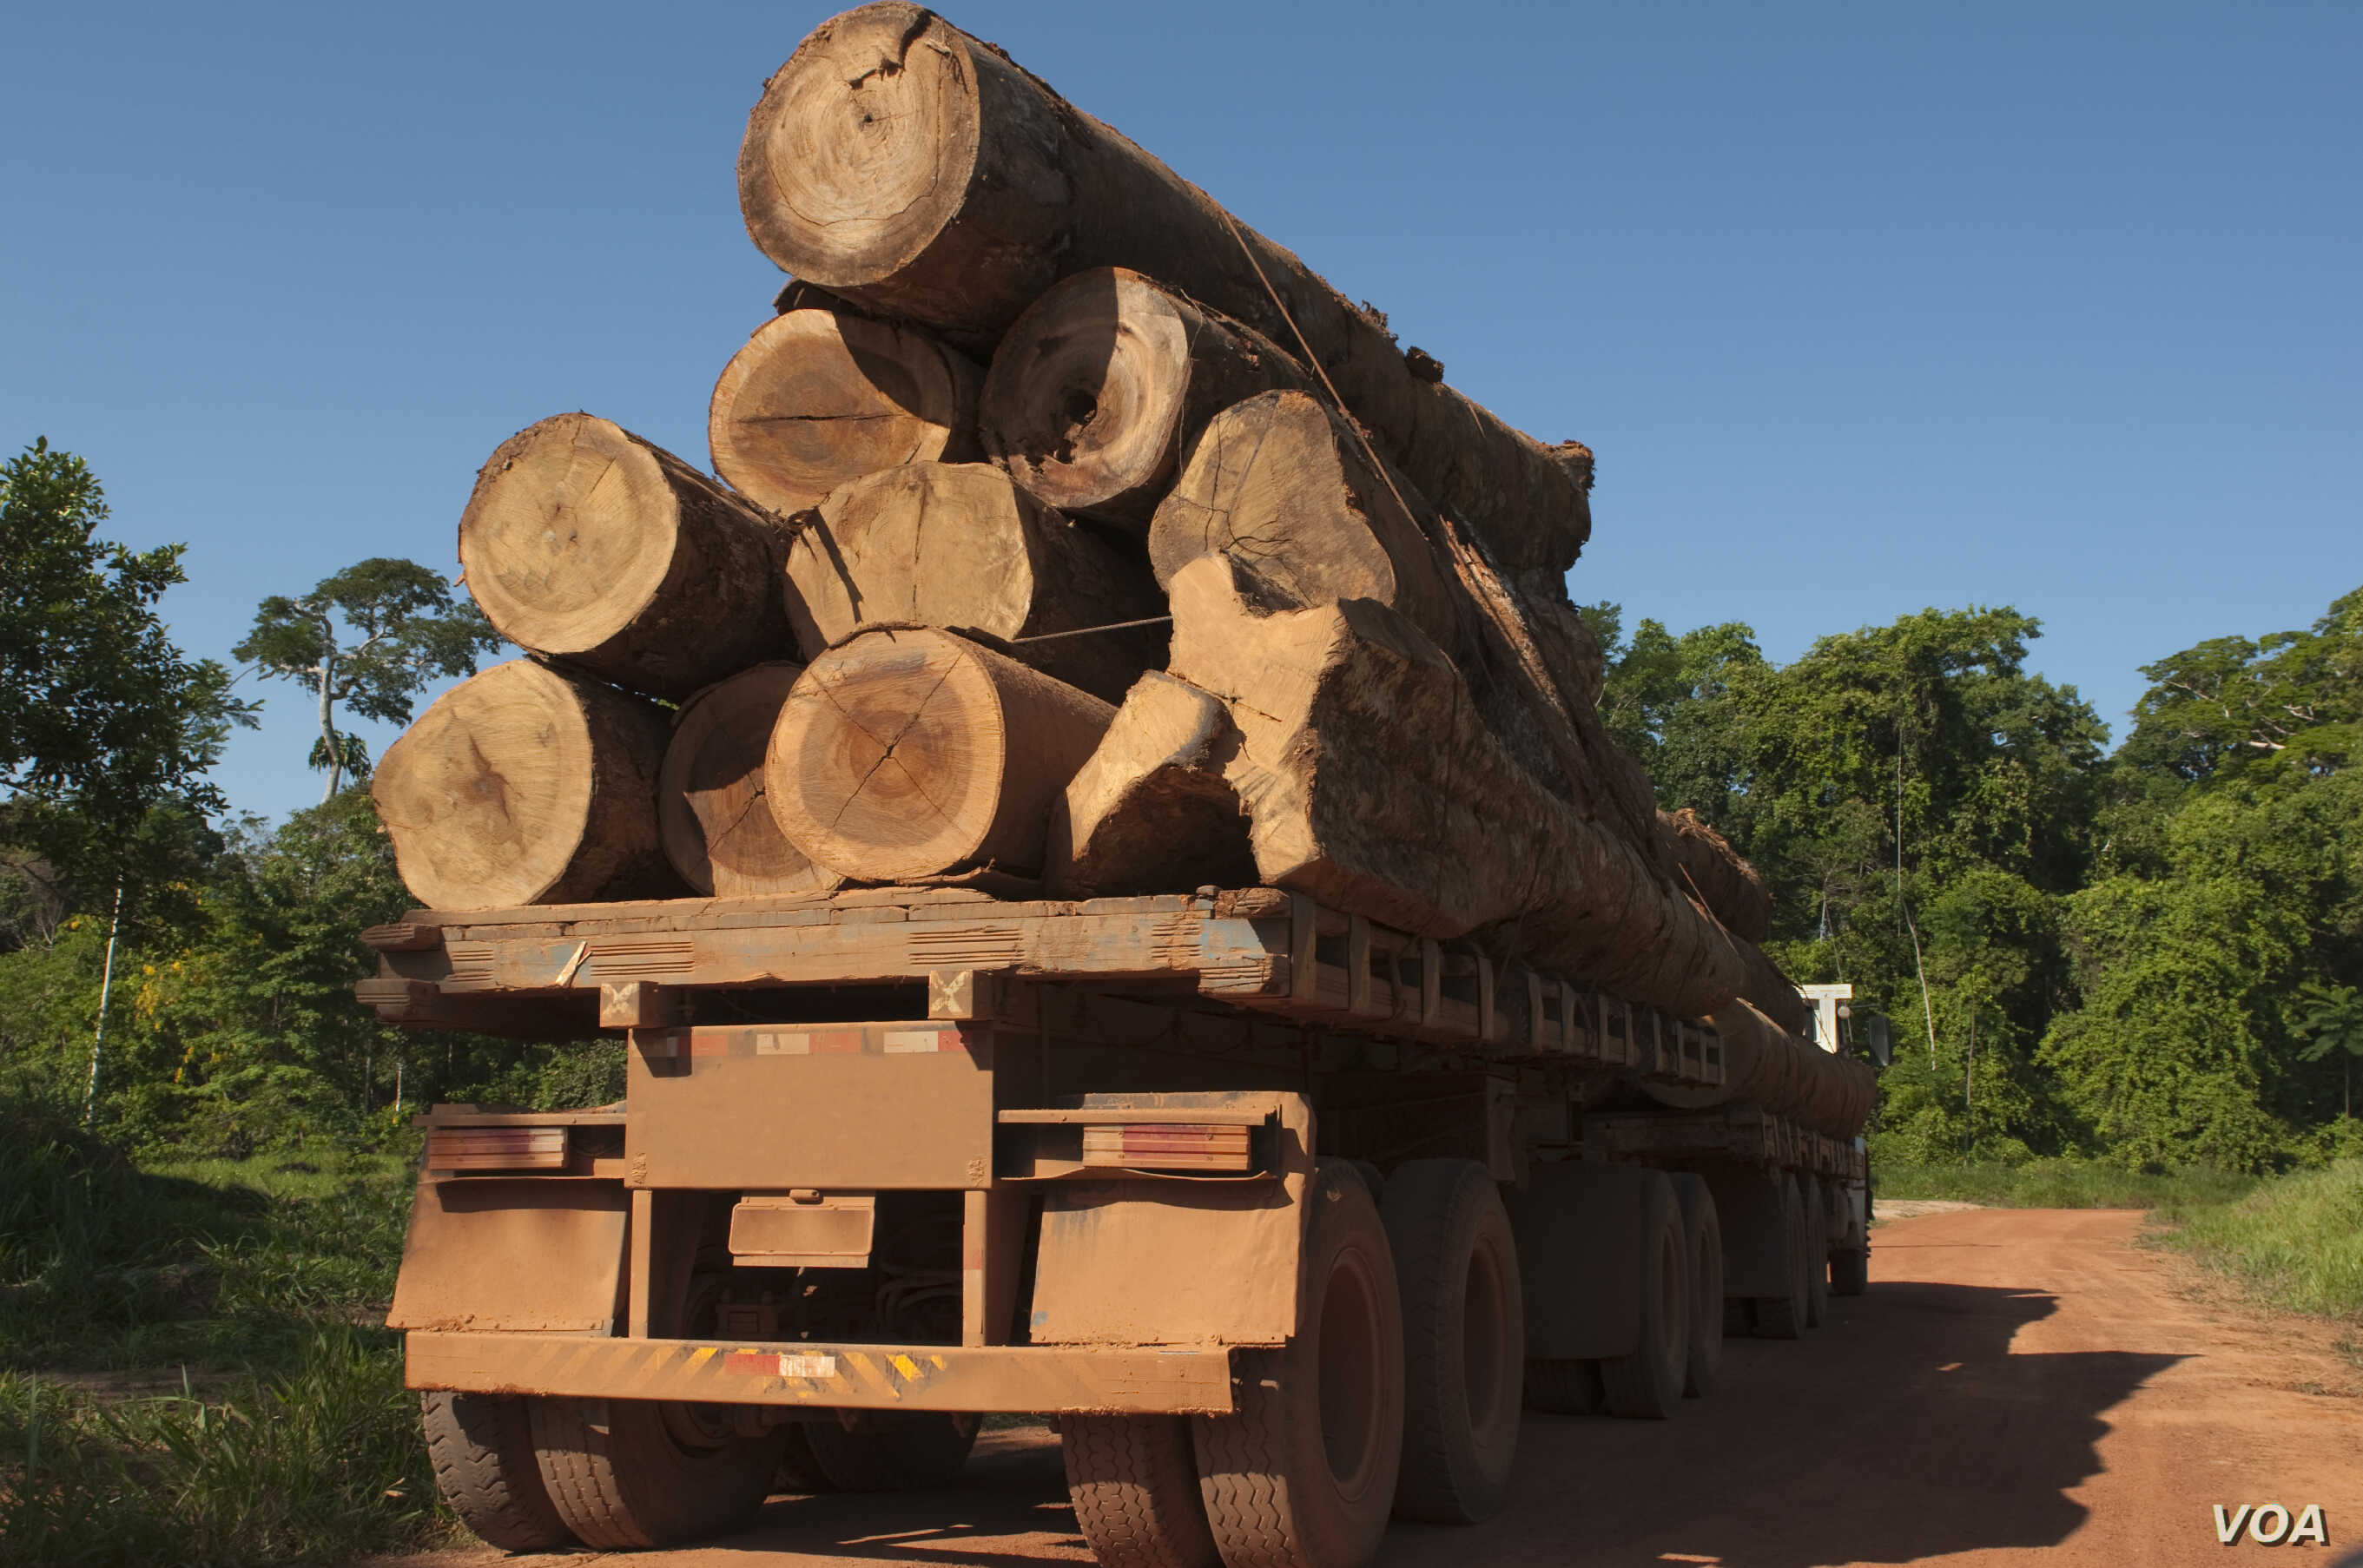 The UN says between 30 and 100 billion dollars are lost each year to the illegal trade in timber. (UNEP)